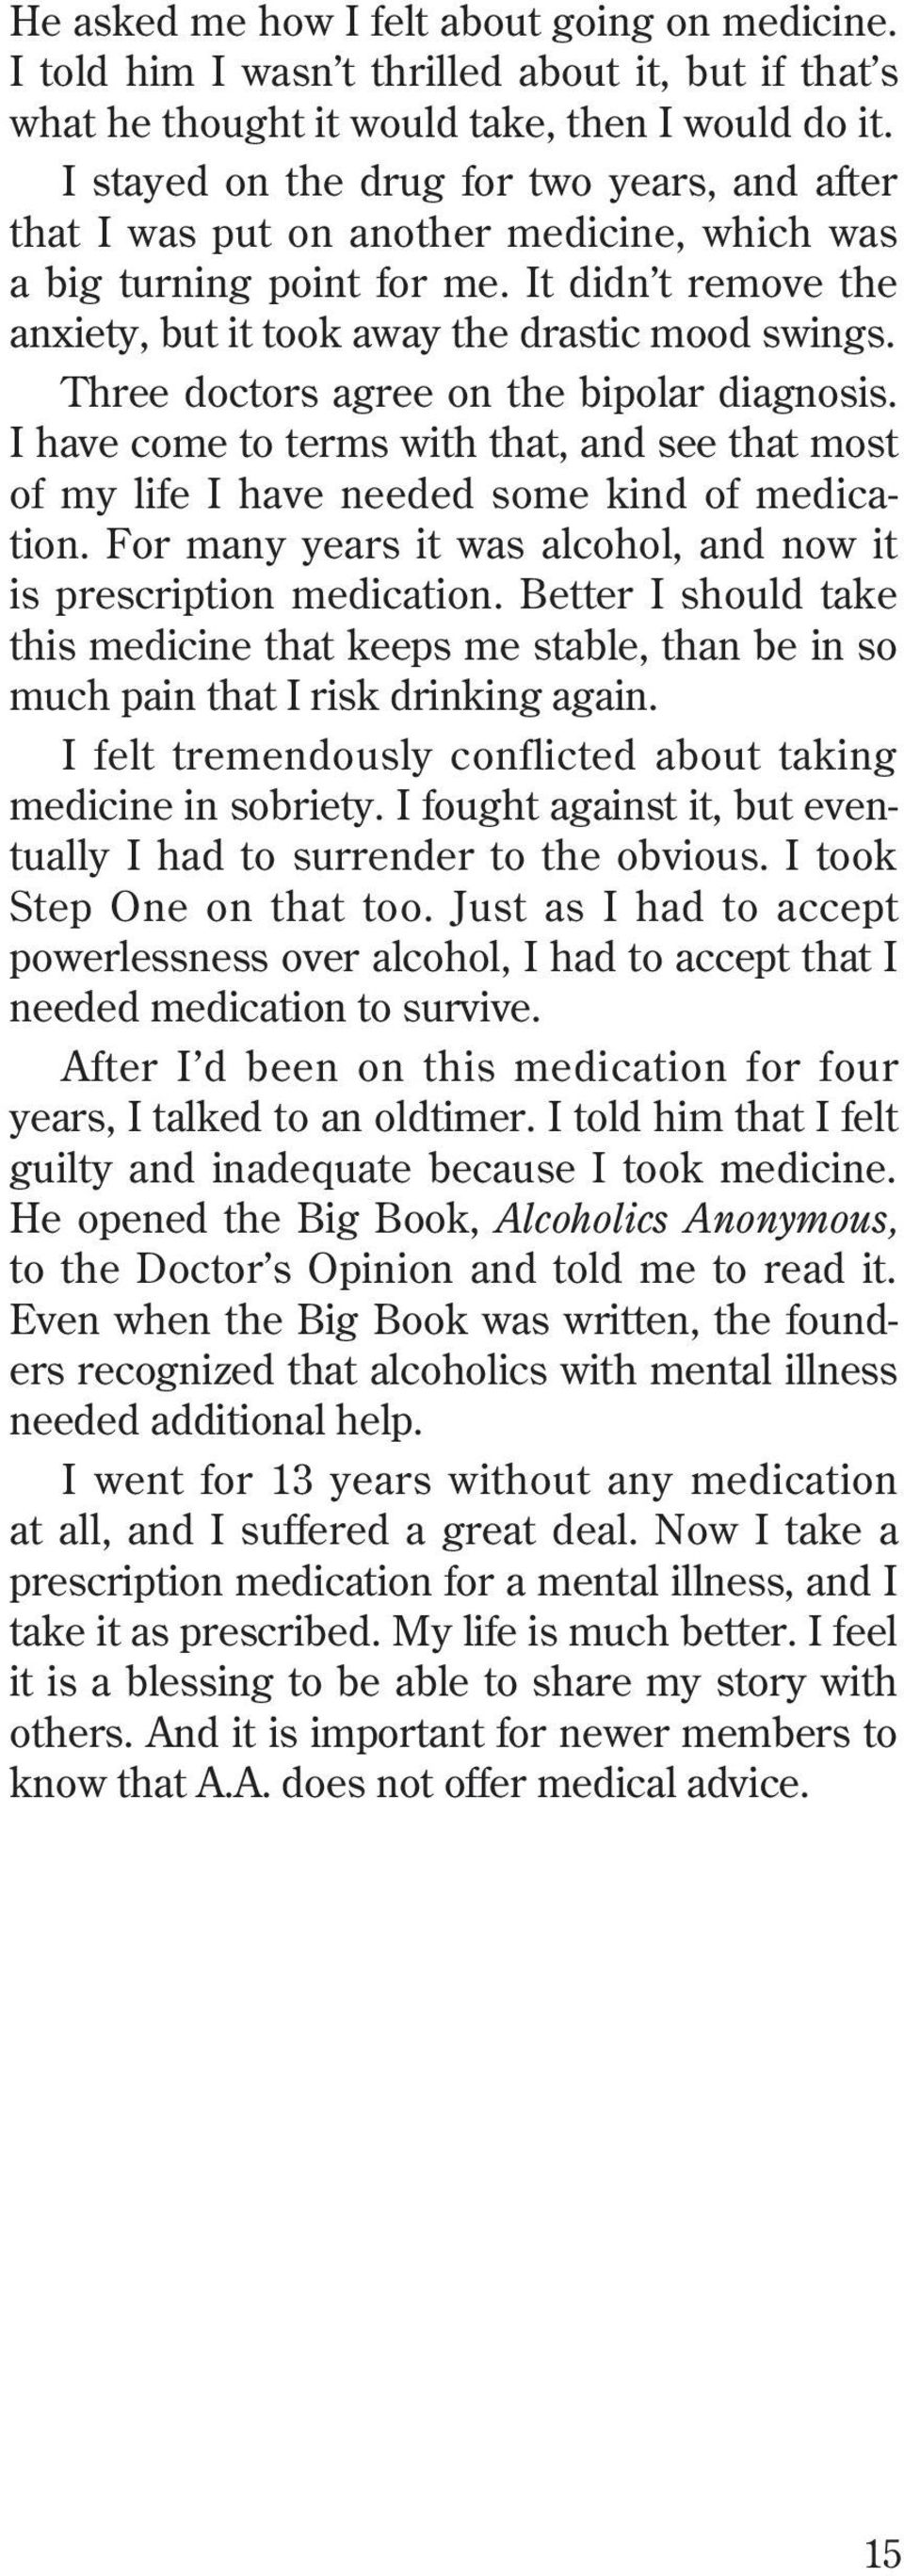 Three doctors agree on the bipolar diagnosis. I have come to terms with that, and see that most of my life I have needed some kind of medication.